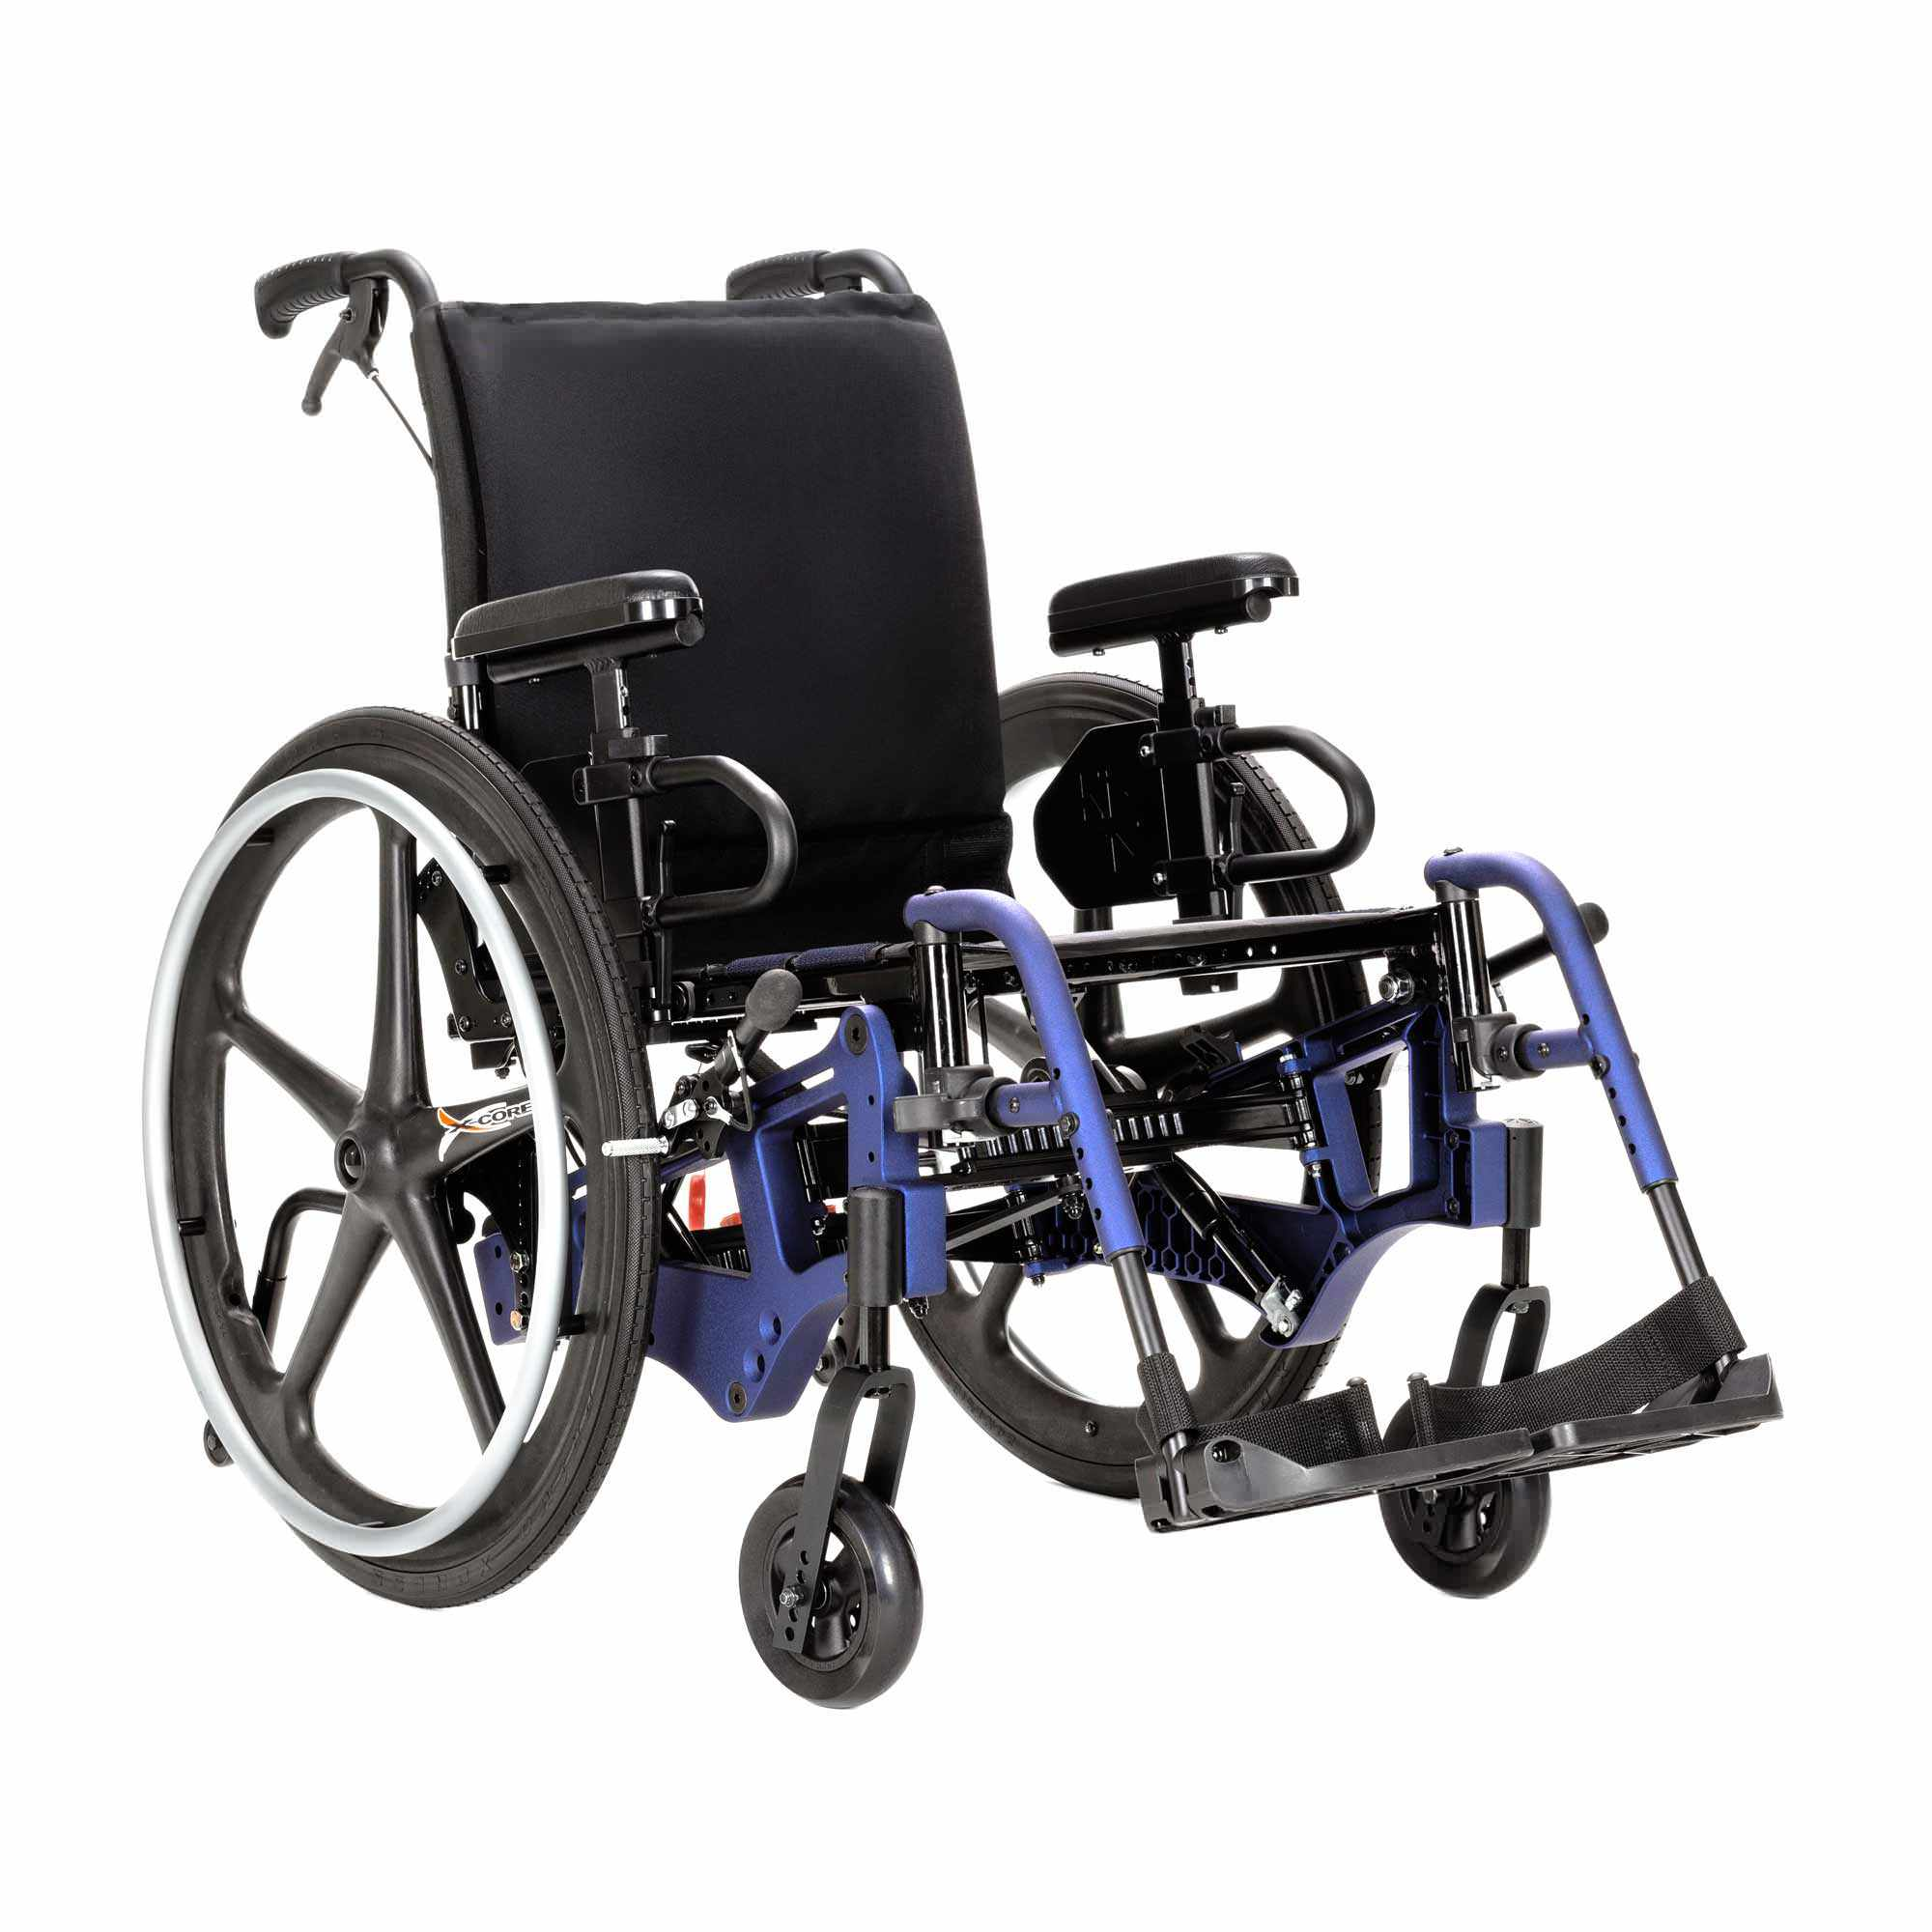 Ki mobility Liberty FT tilt wheelchair - Quickship